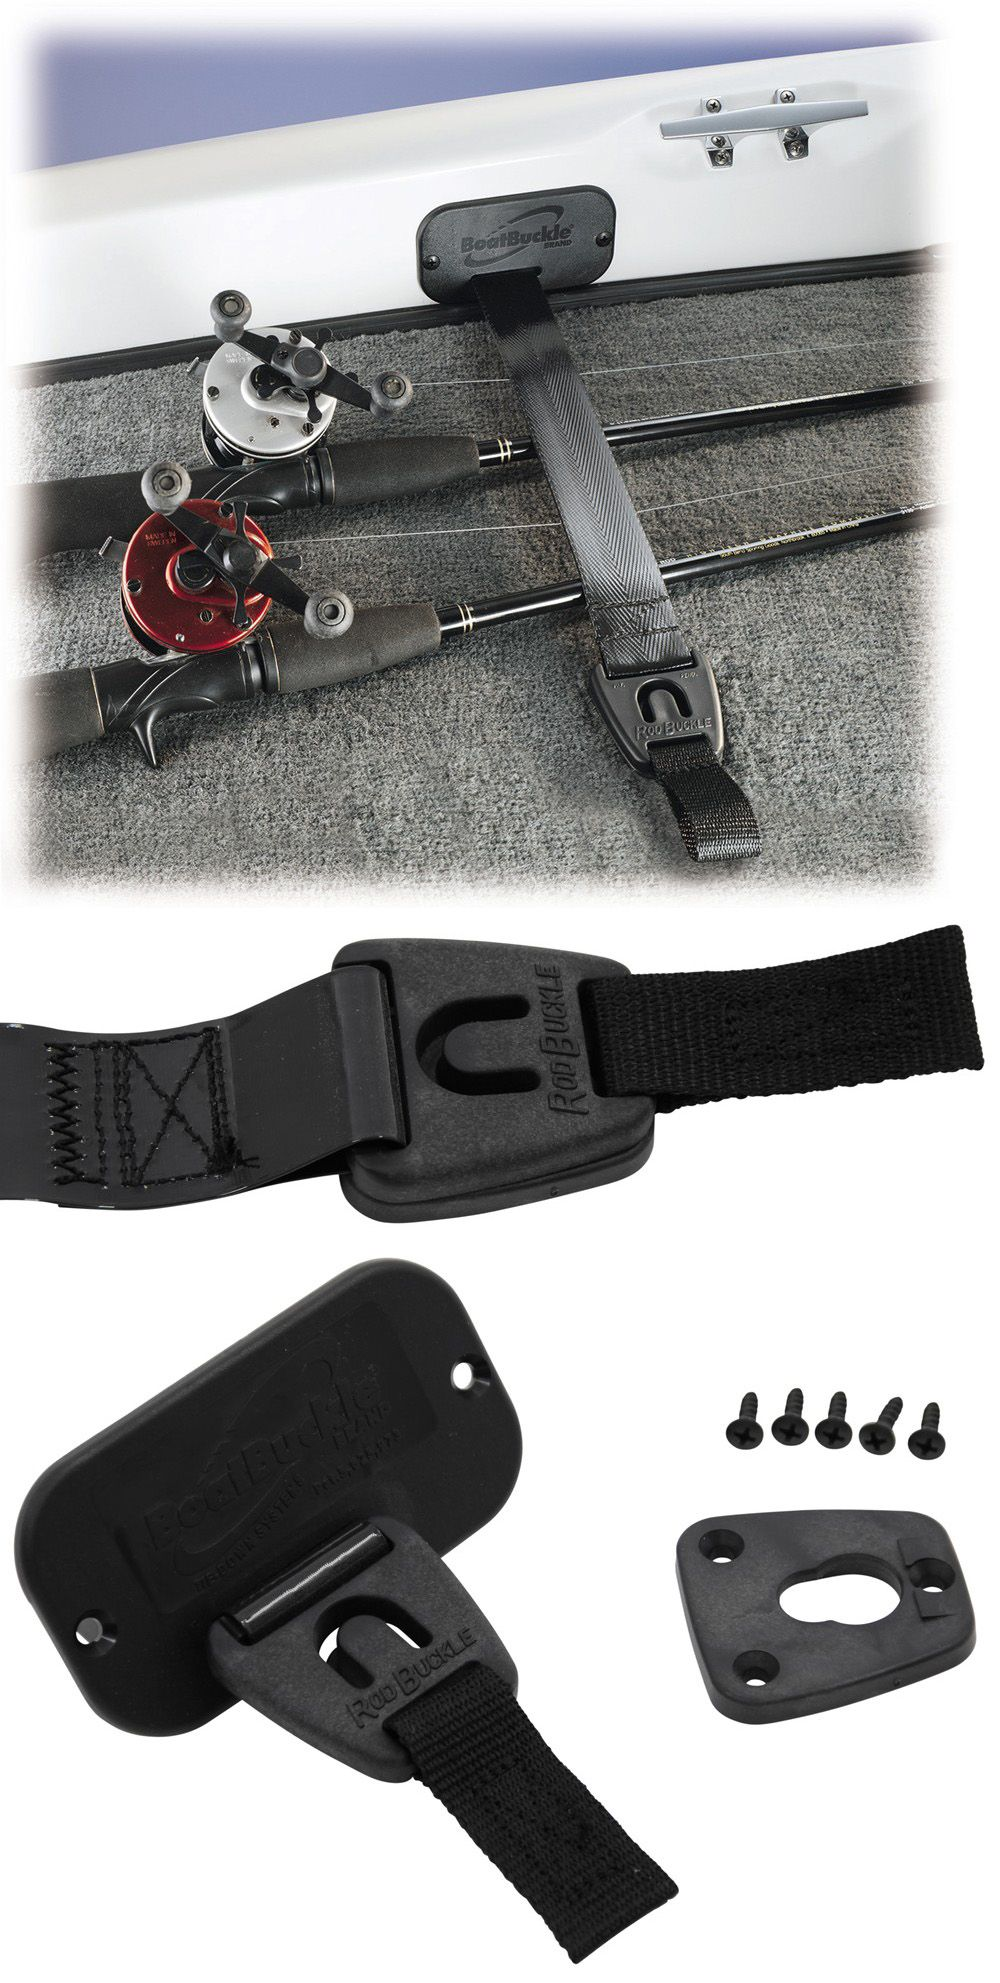 Rodbuckle Retractable Fishing Rod Tie Down Strap 2 X 24 Deck Gunwale Mount Boatbuckle Fishing Fishing Rod Fishing Rod Holder Tie Down Strap